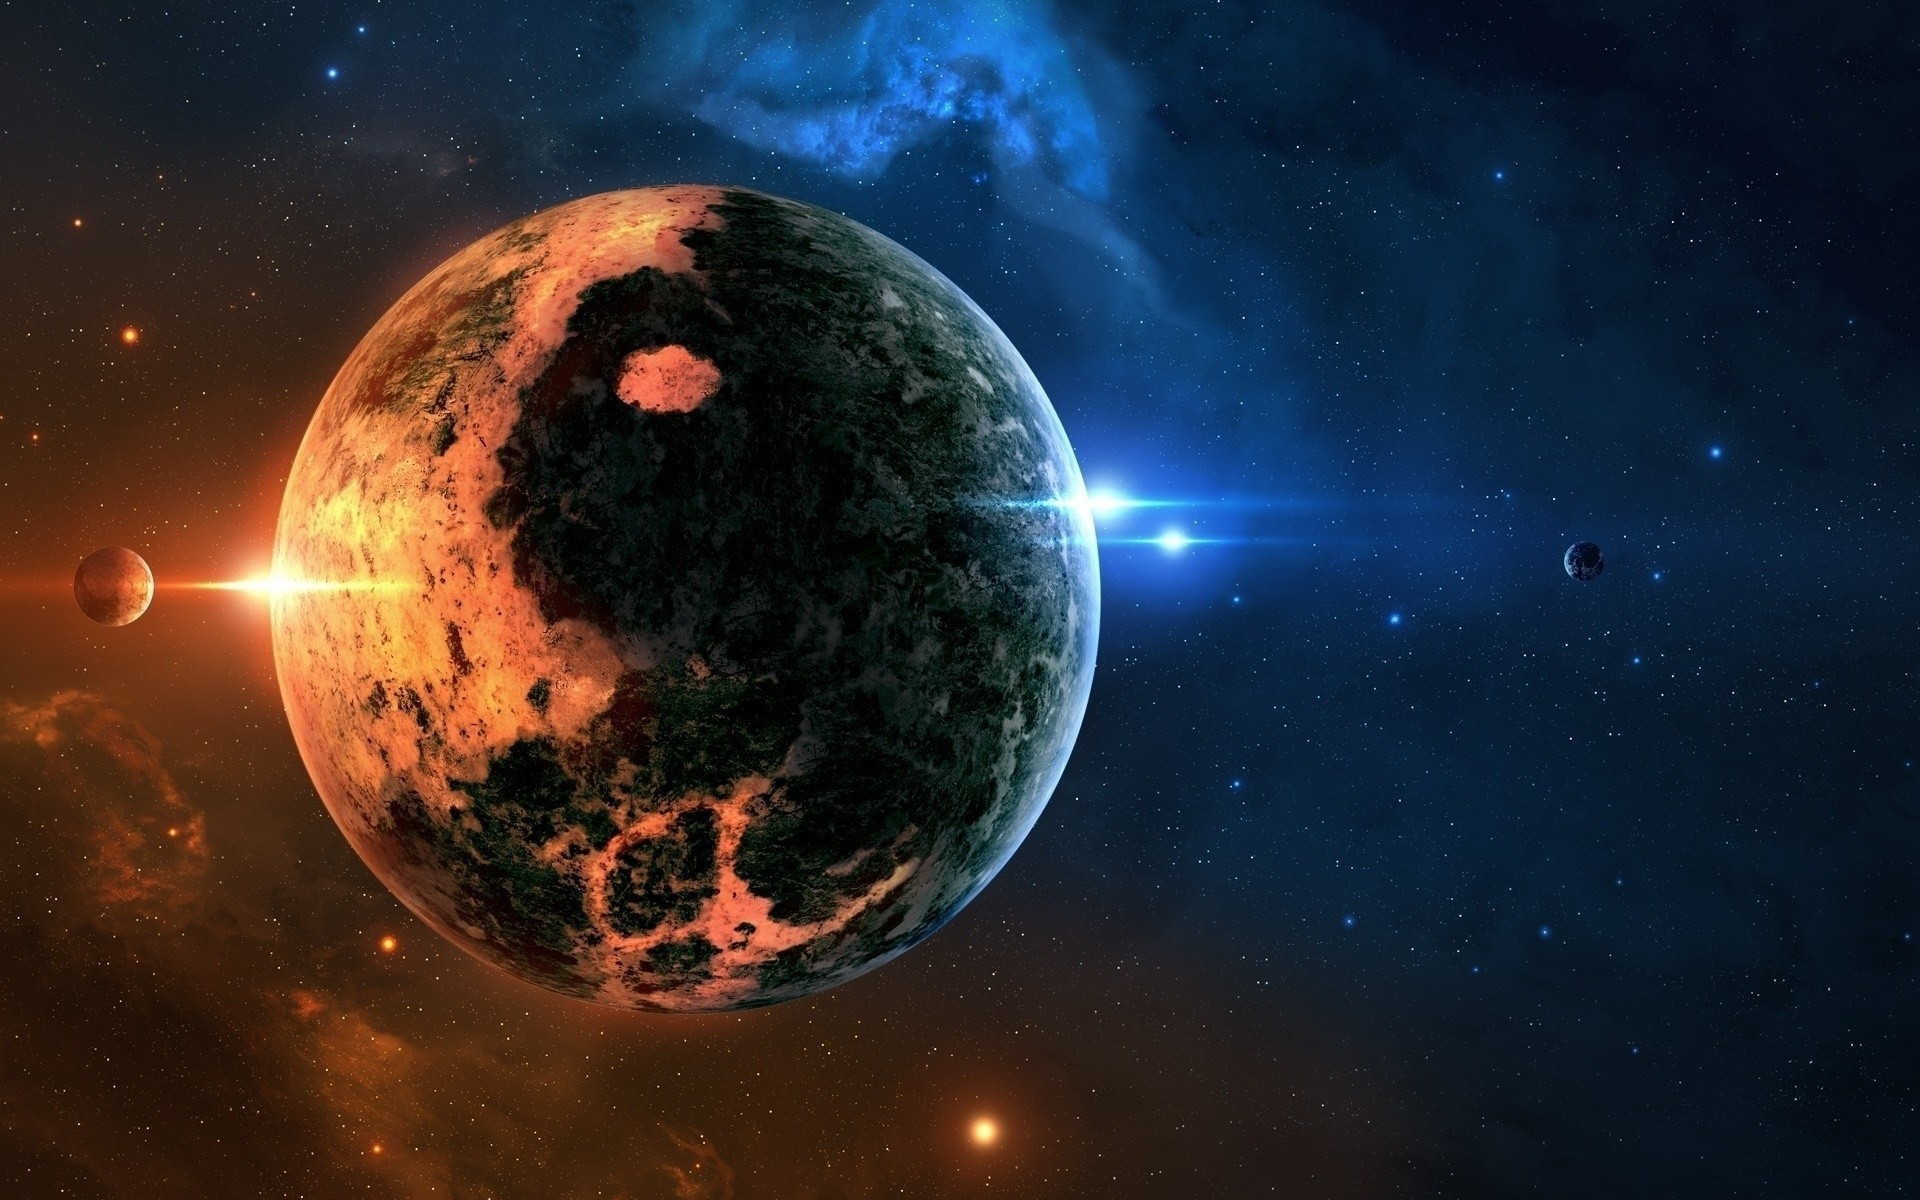 planets colliding in outer space